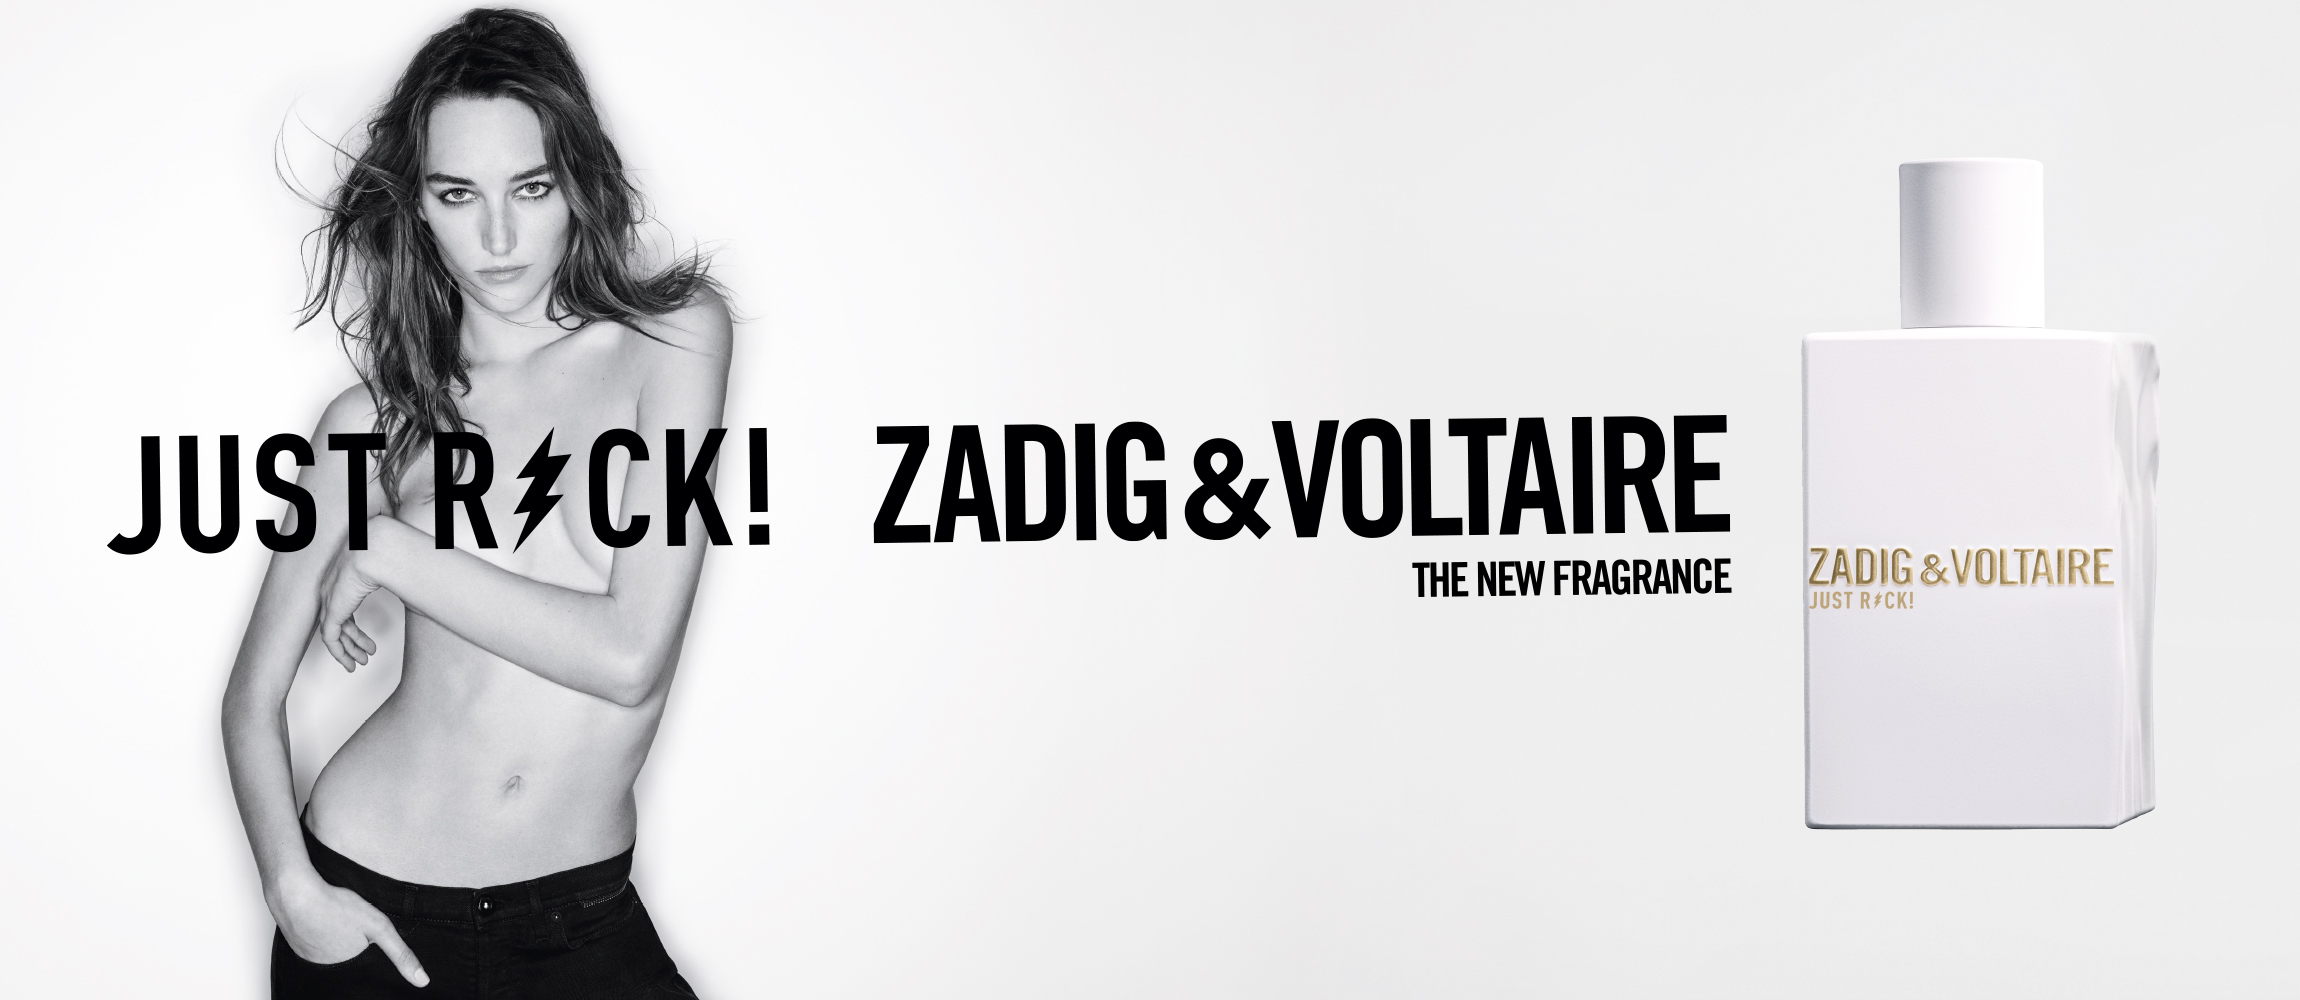 Zadig & Voltaire, Just Rock, Female